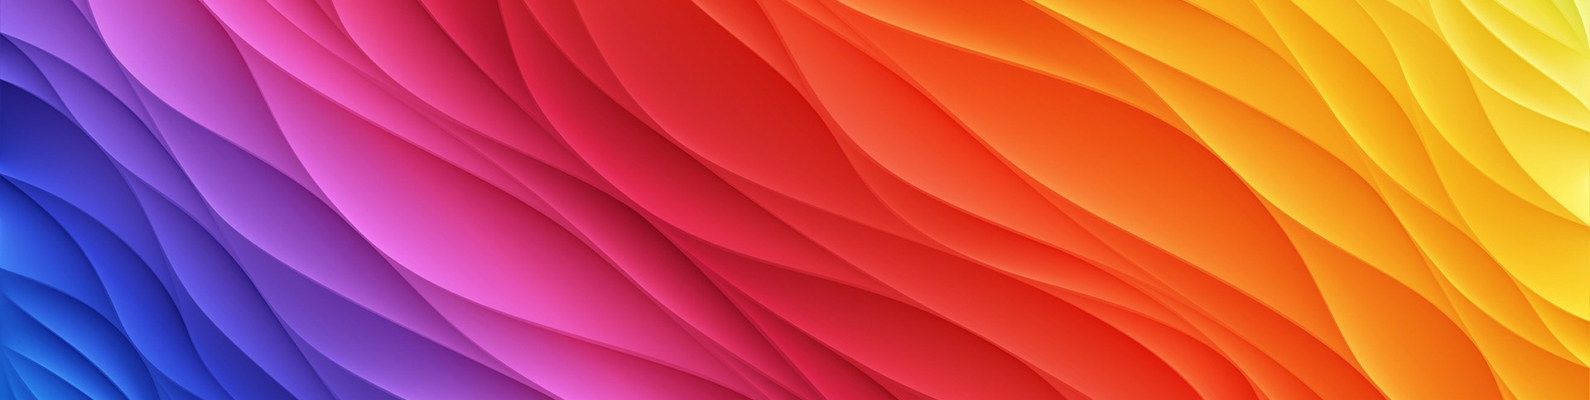 background, colored, колор, wavy, абстракция, фон, abstract, радуга, Rainbow